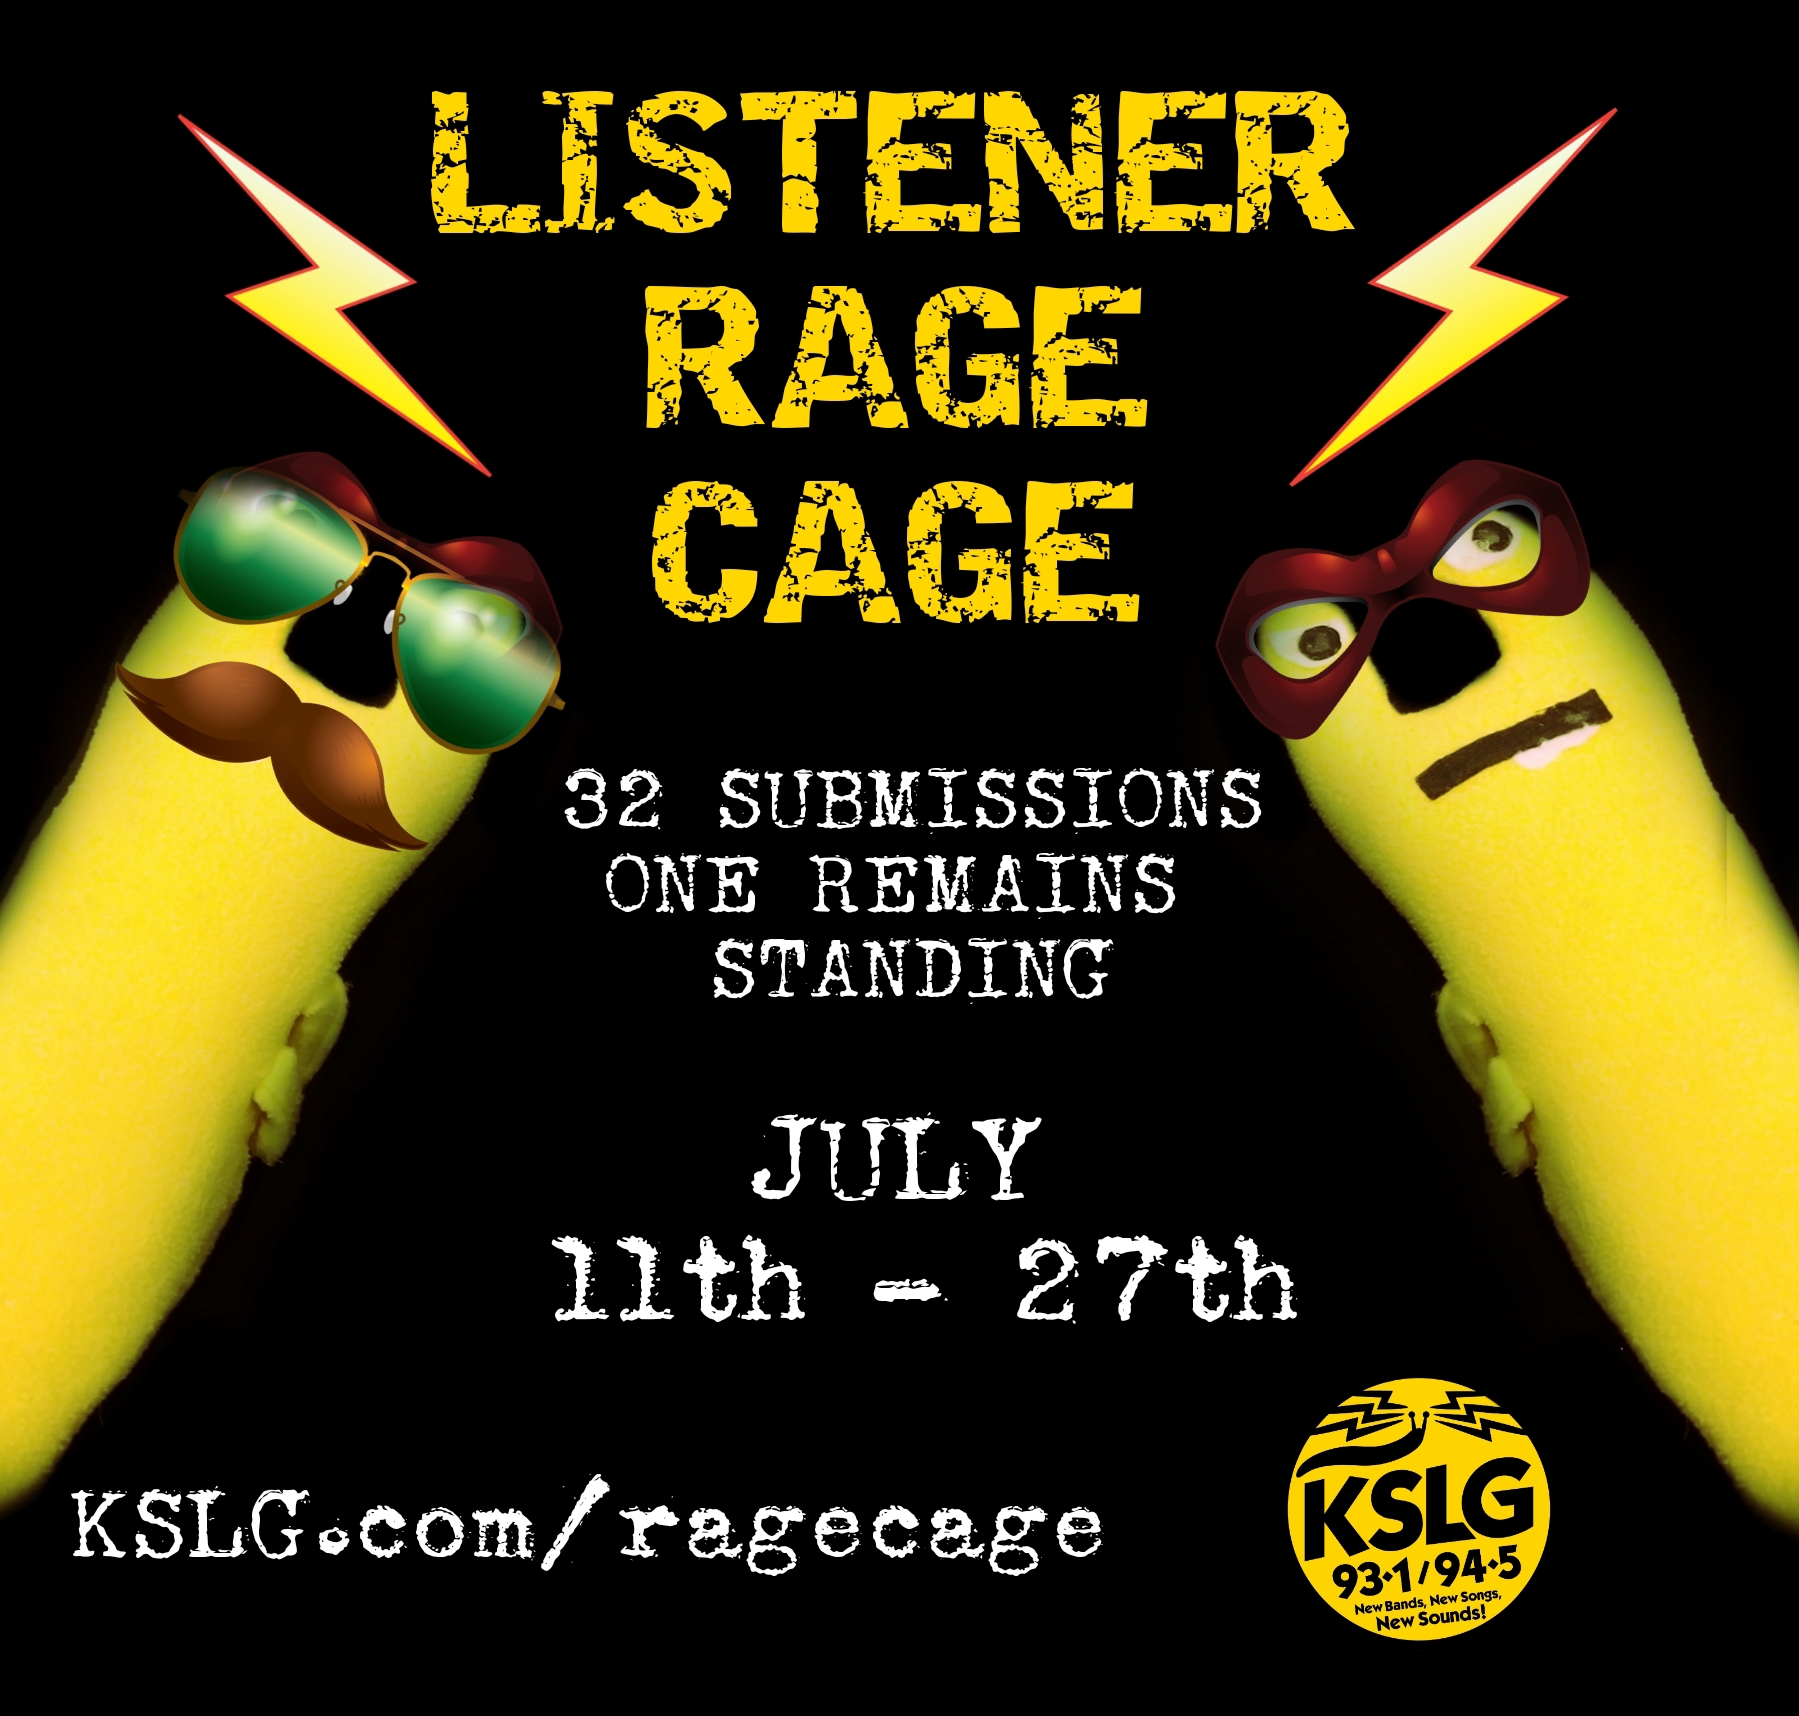 Rage Cage